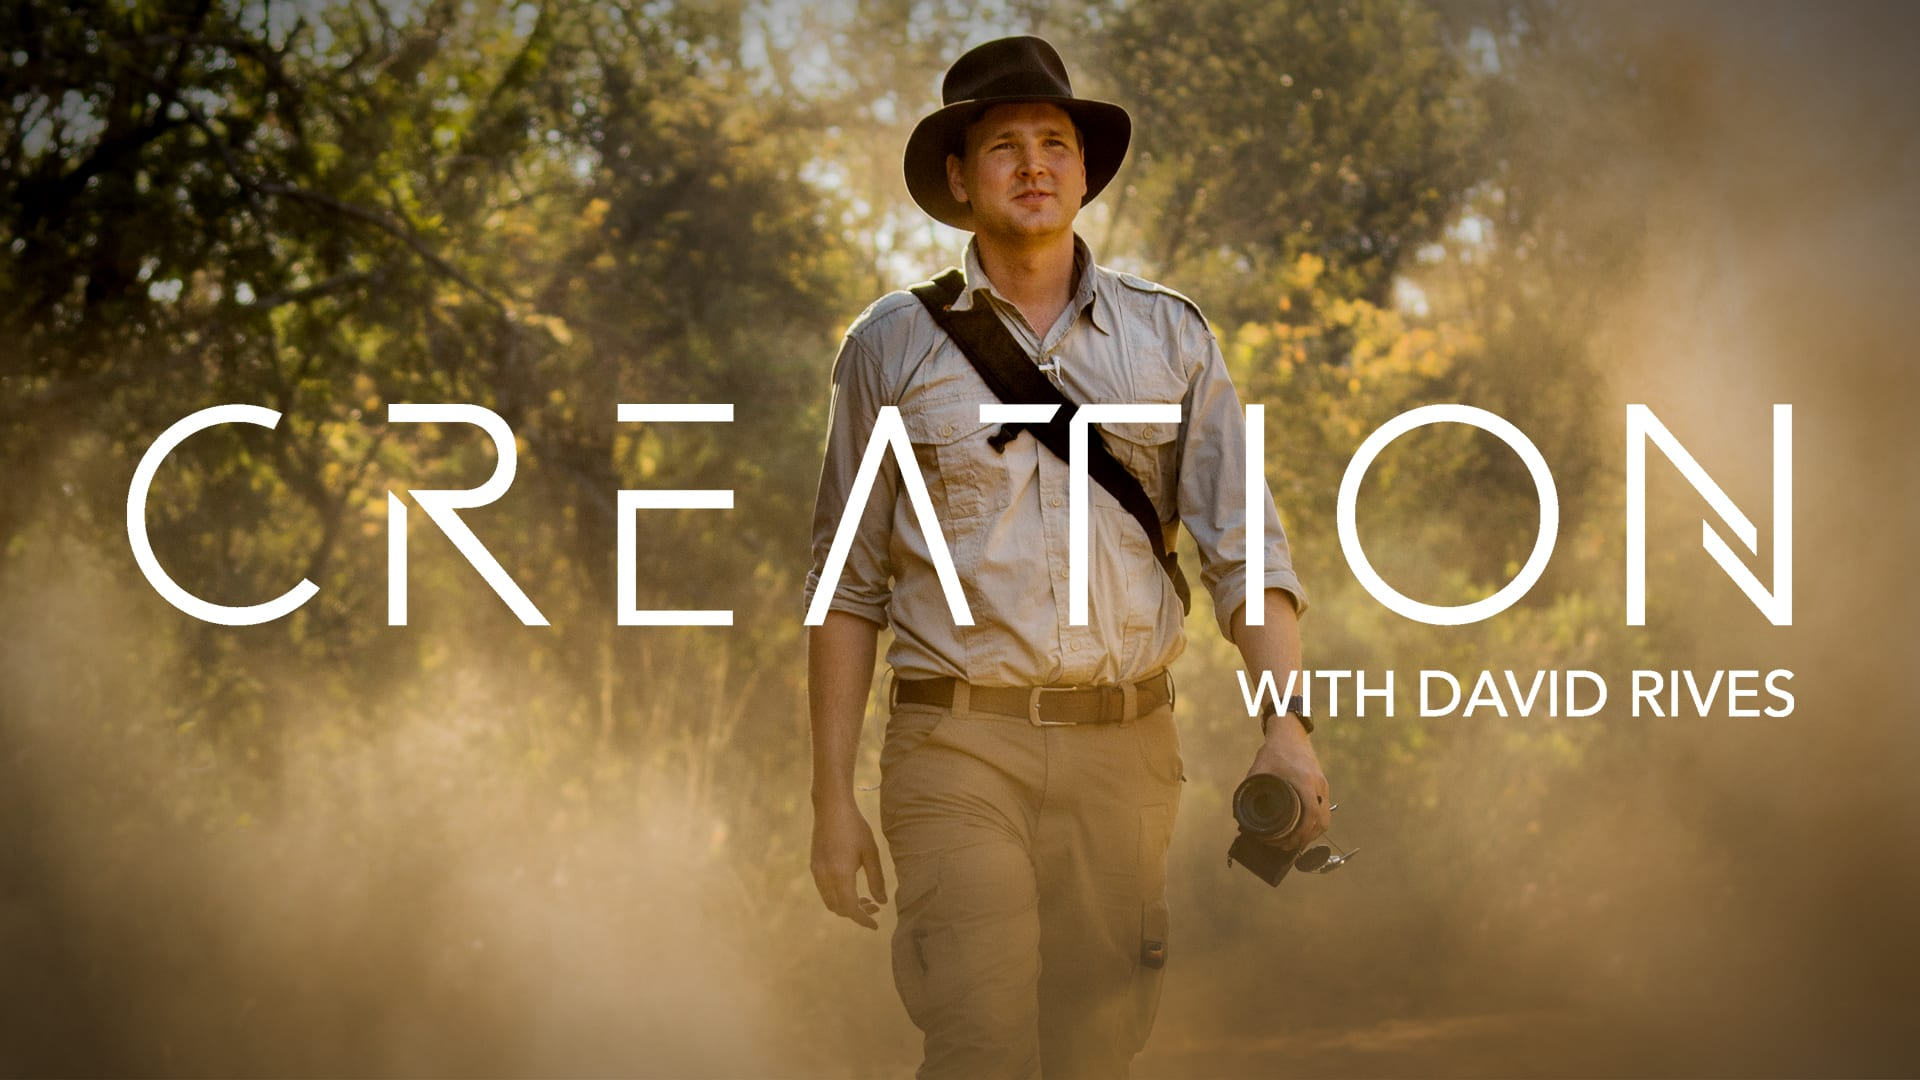 Earth's Geology on CREATION with David Rives on TBN